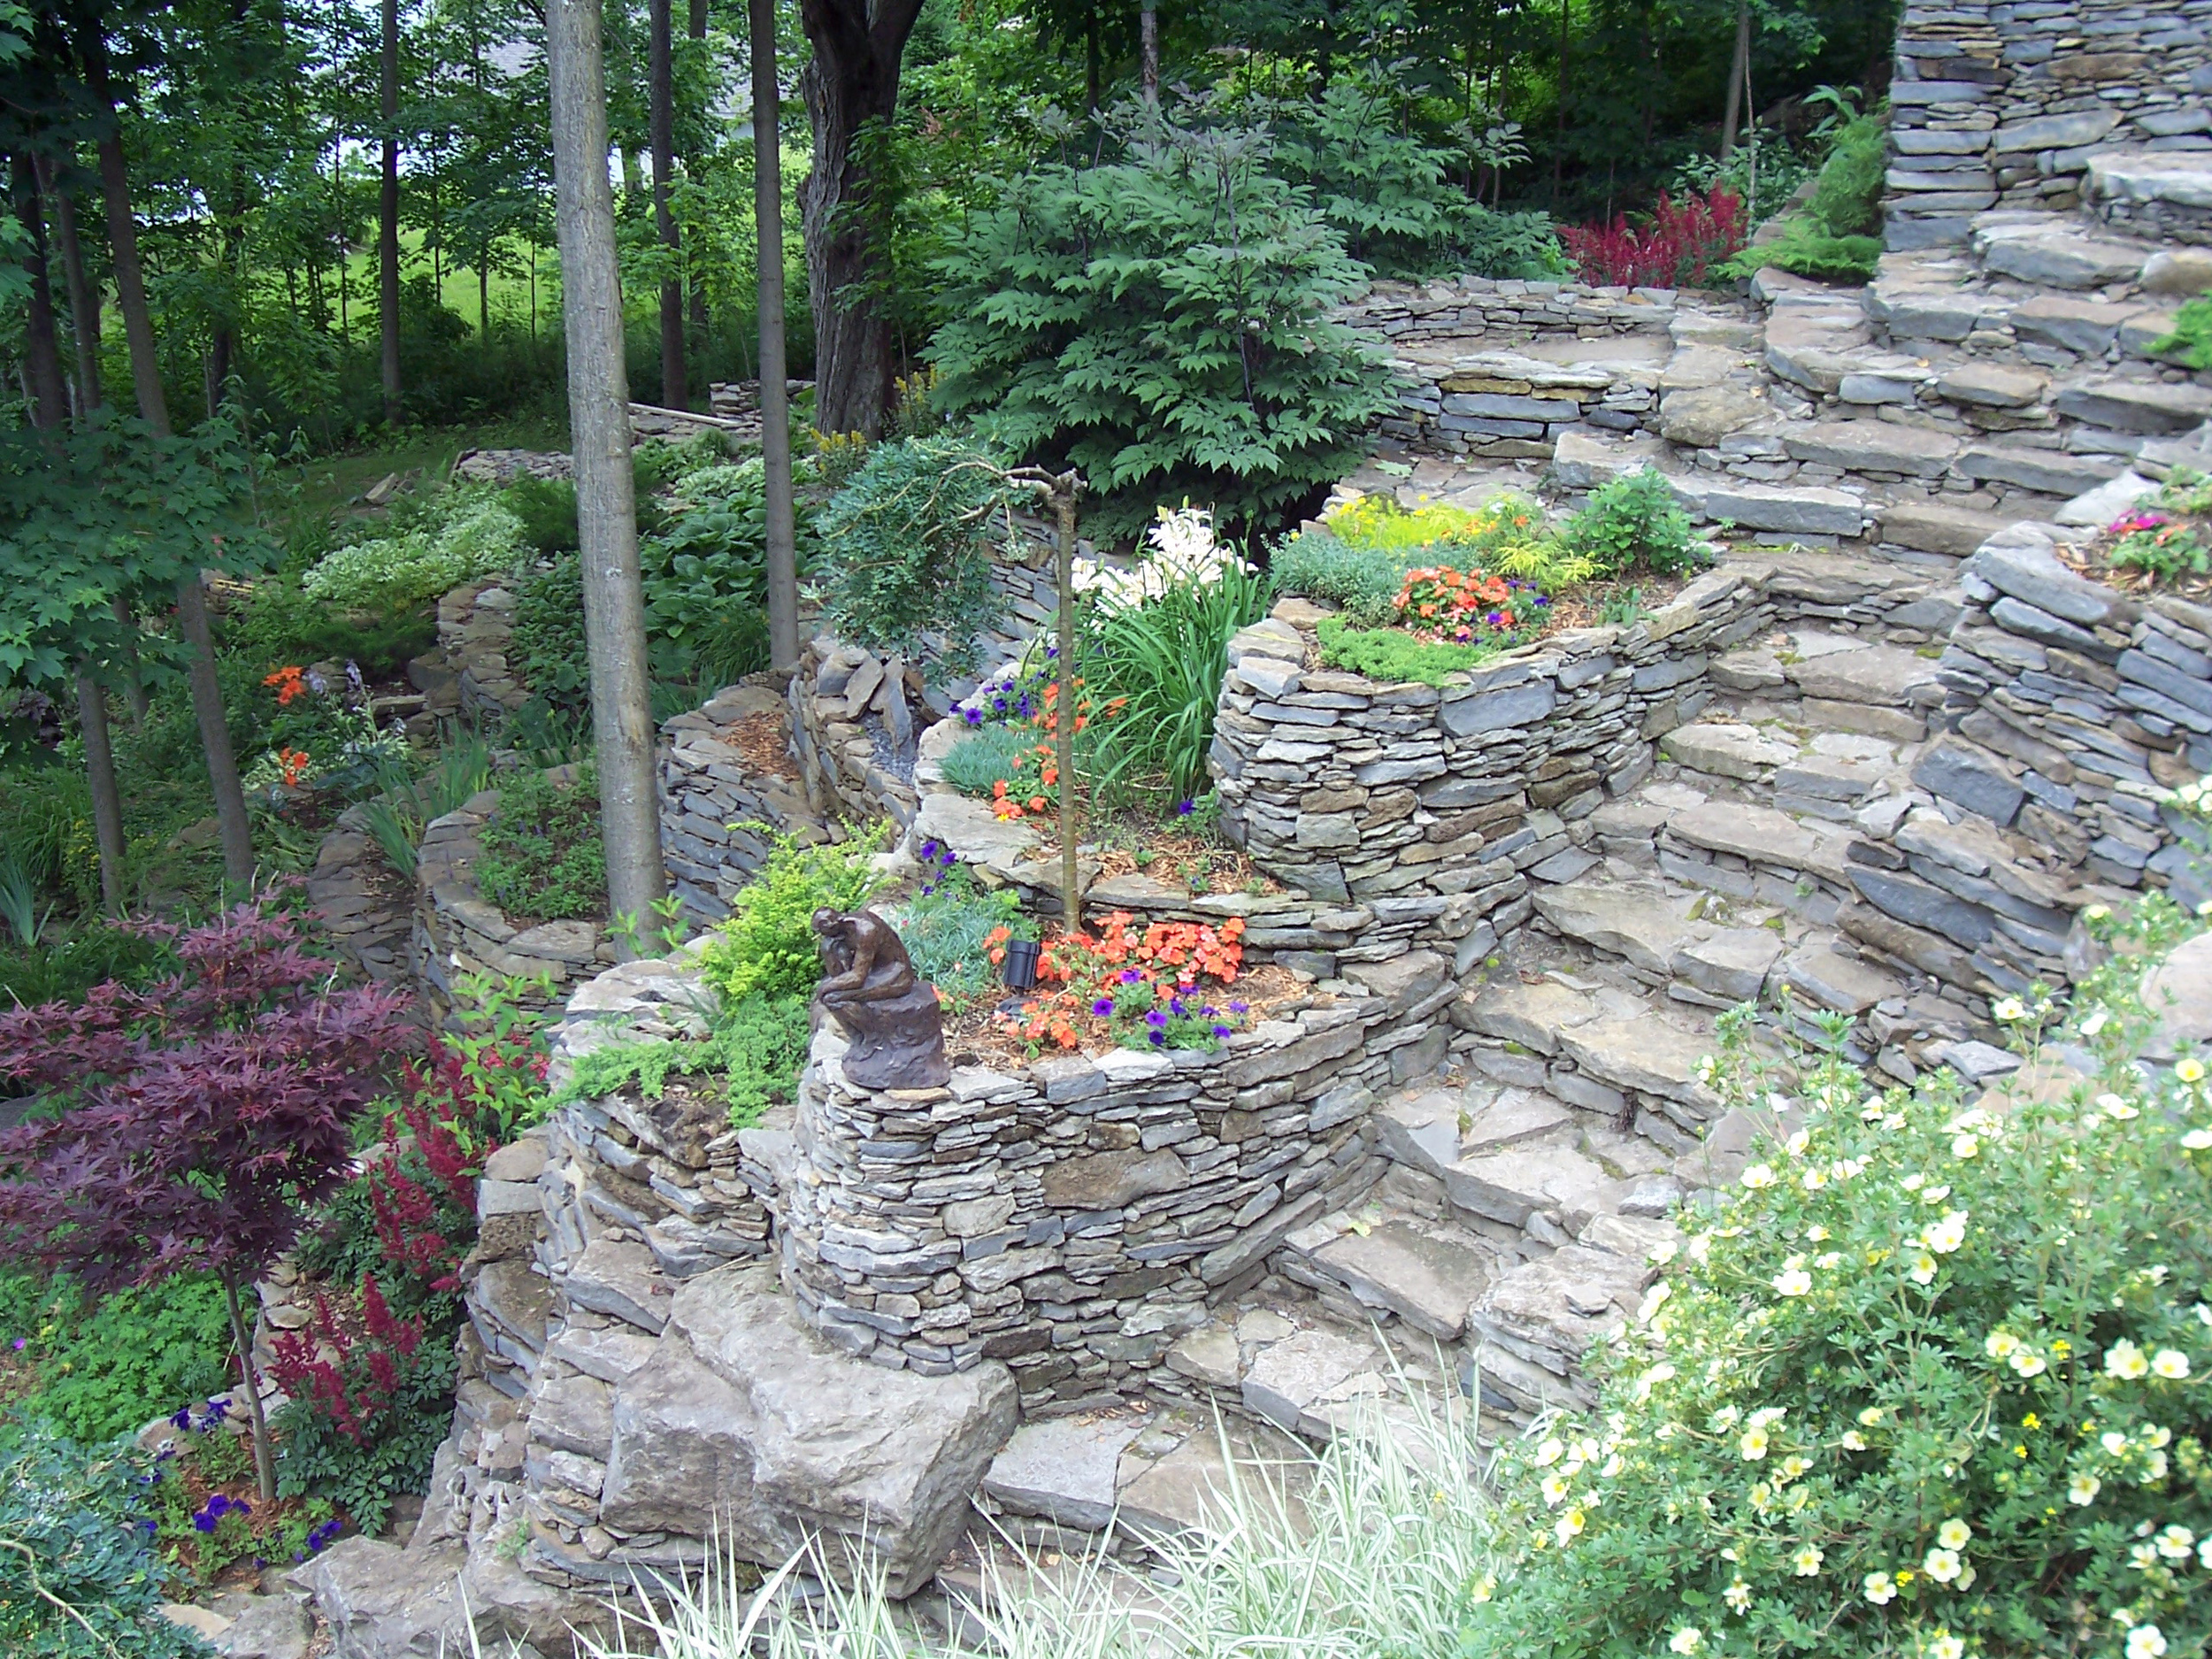 Landscape Design | Terrace Gardens | Dry Lay Stone Stairs | Waterfront Dream Home | Riverview Design Solutions | Landscaping | Prescott, Ontario, Canada